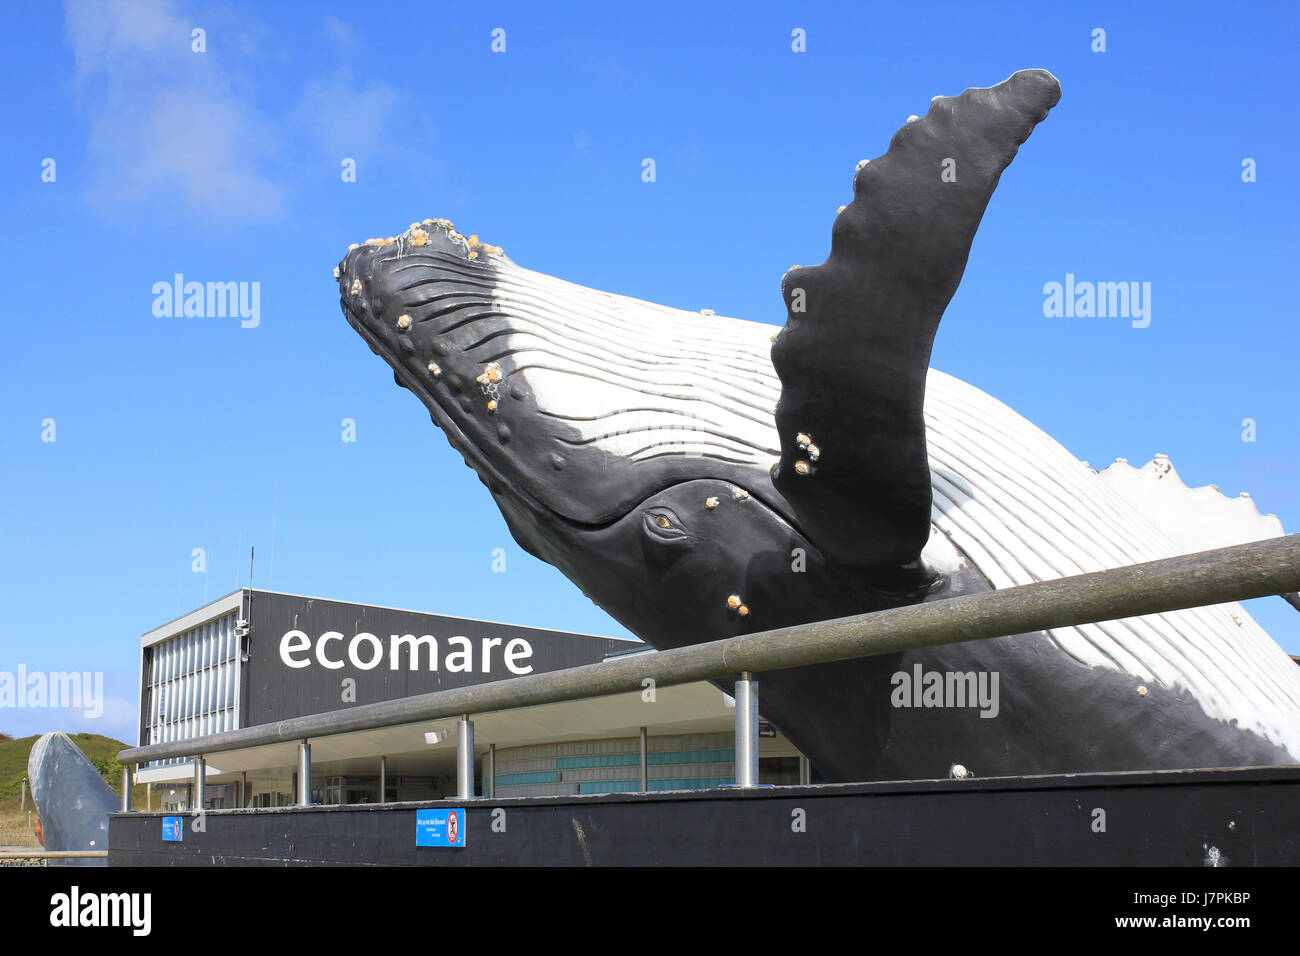 Ecomare - Humpback Whale Sculpture - Stock Image